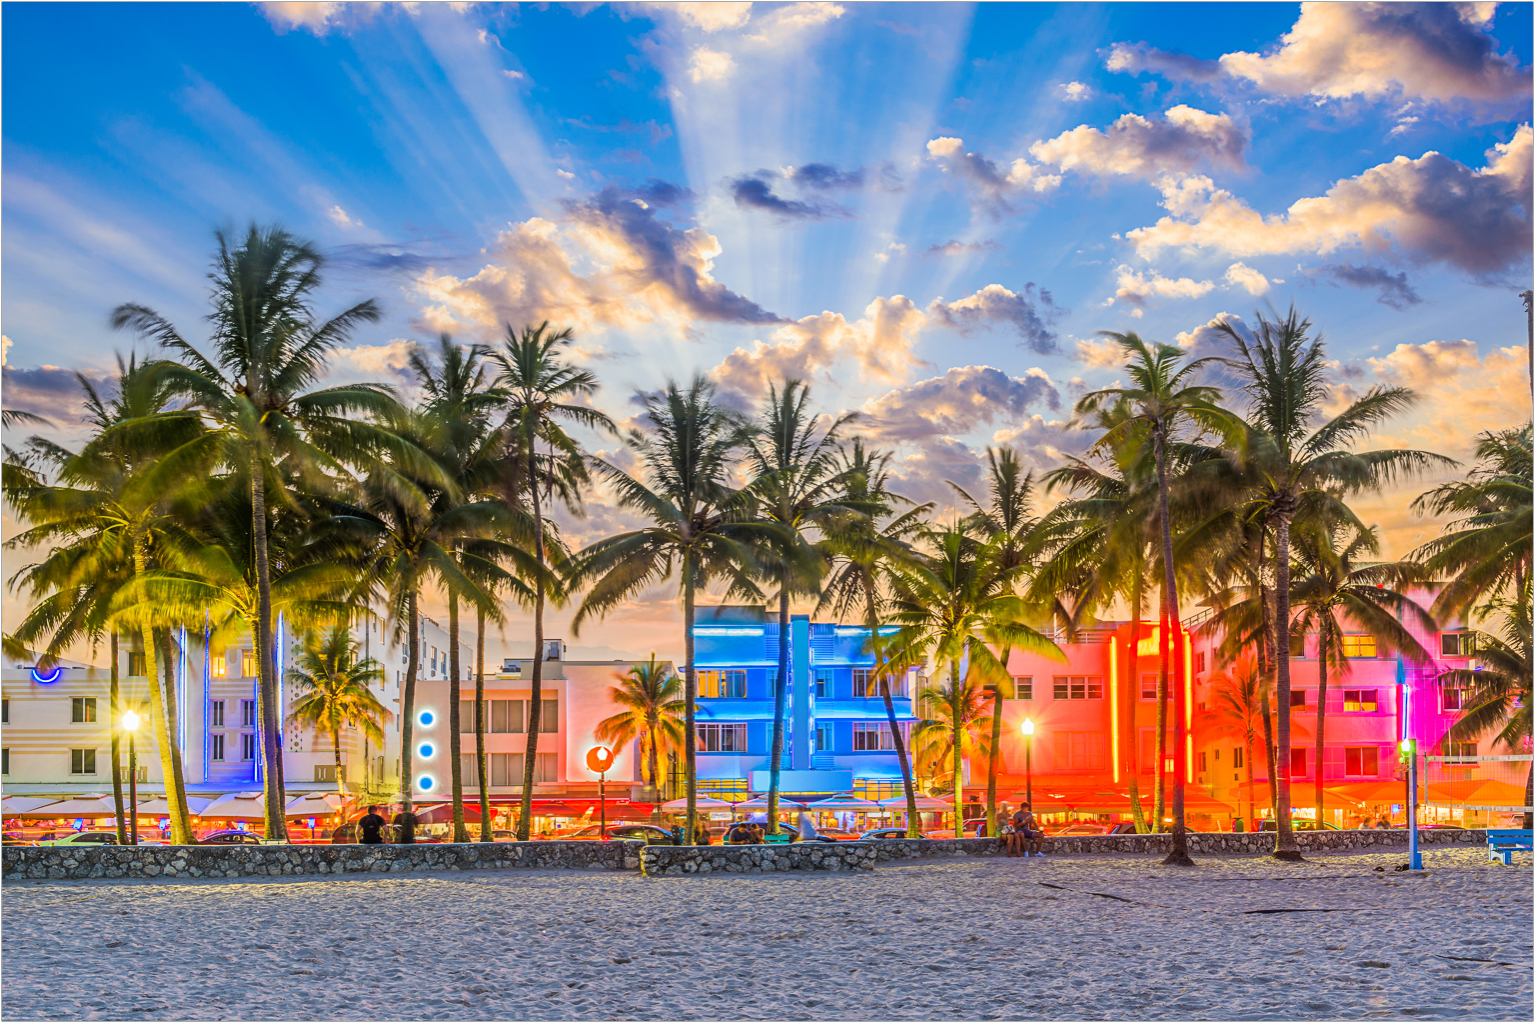 Miami Luxury Hotels, Luxury Hotels in Miami